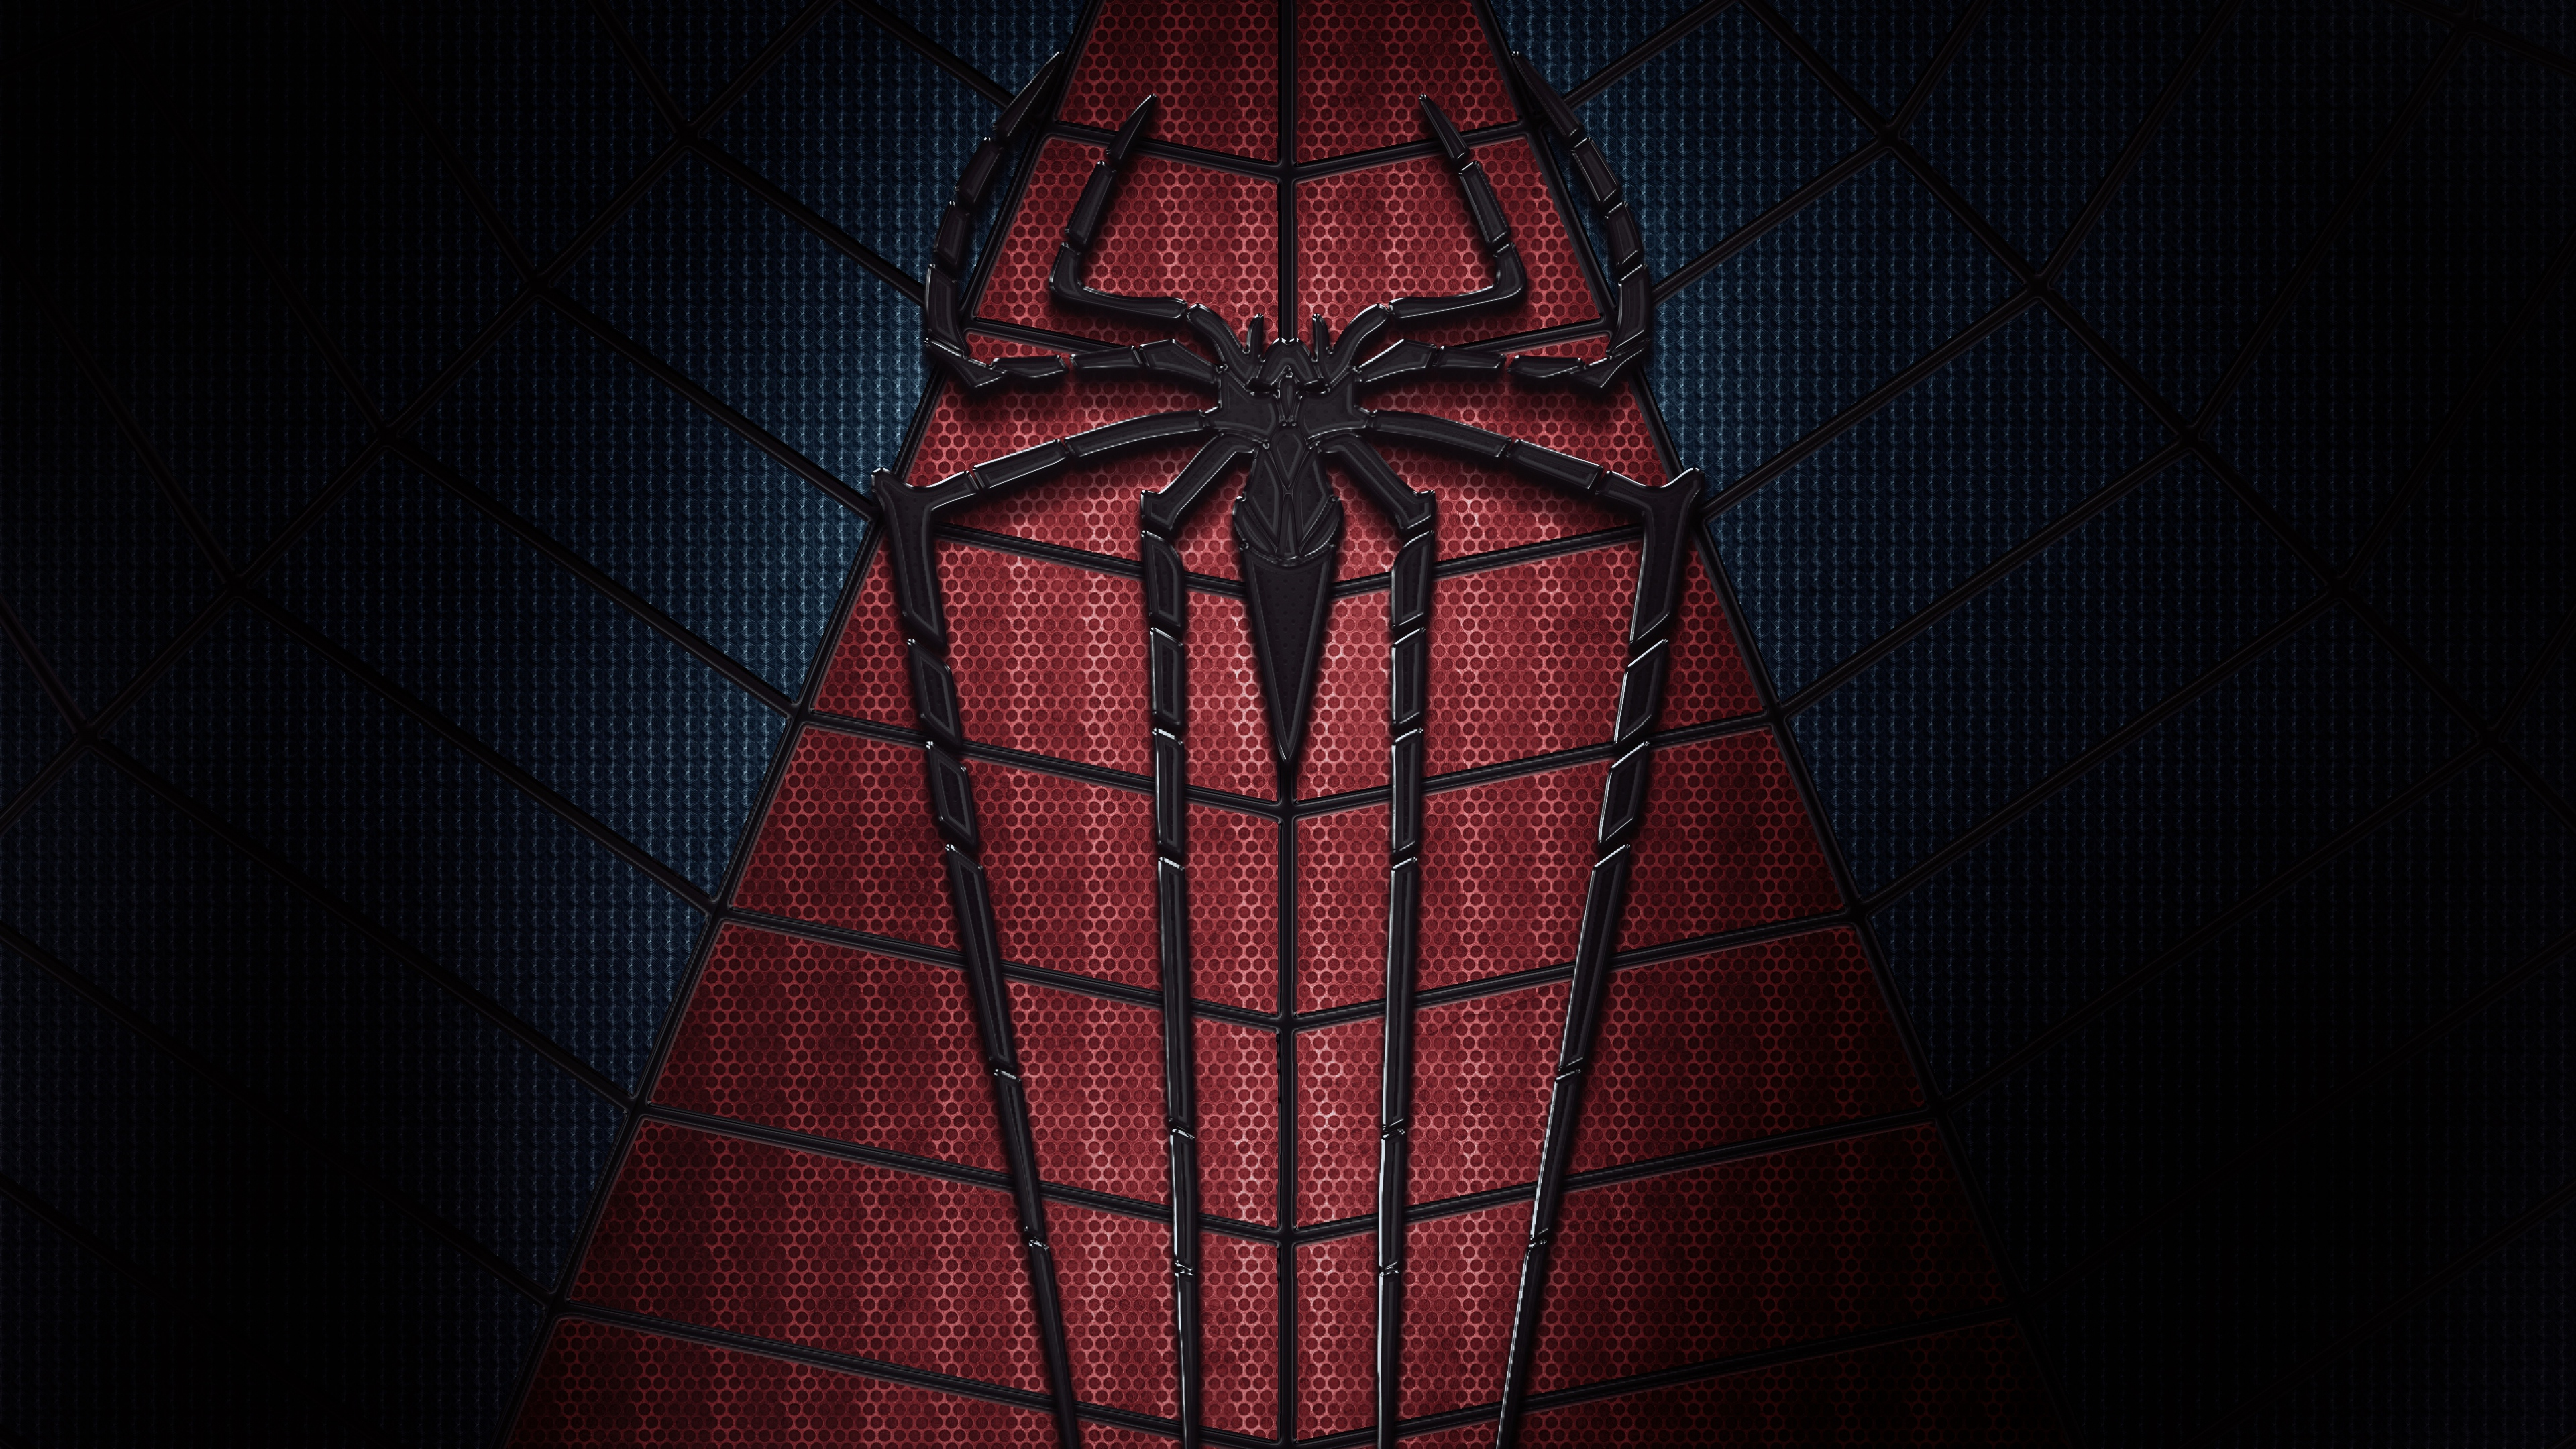 Spiderman HD Wallpapers A9